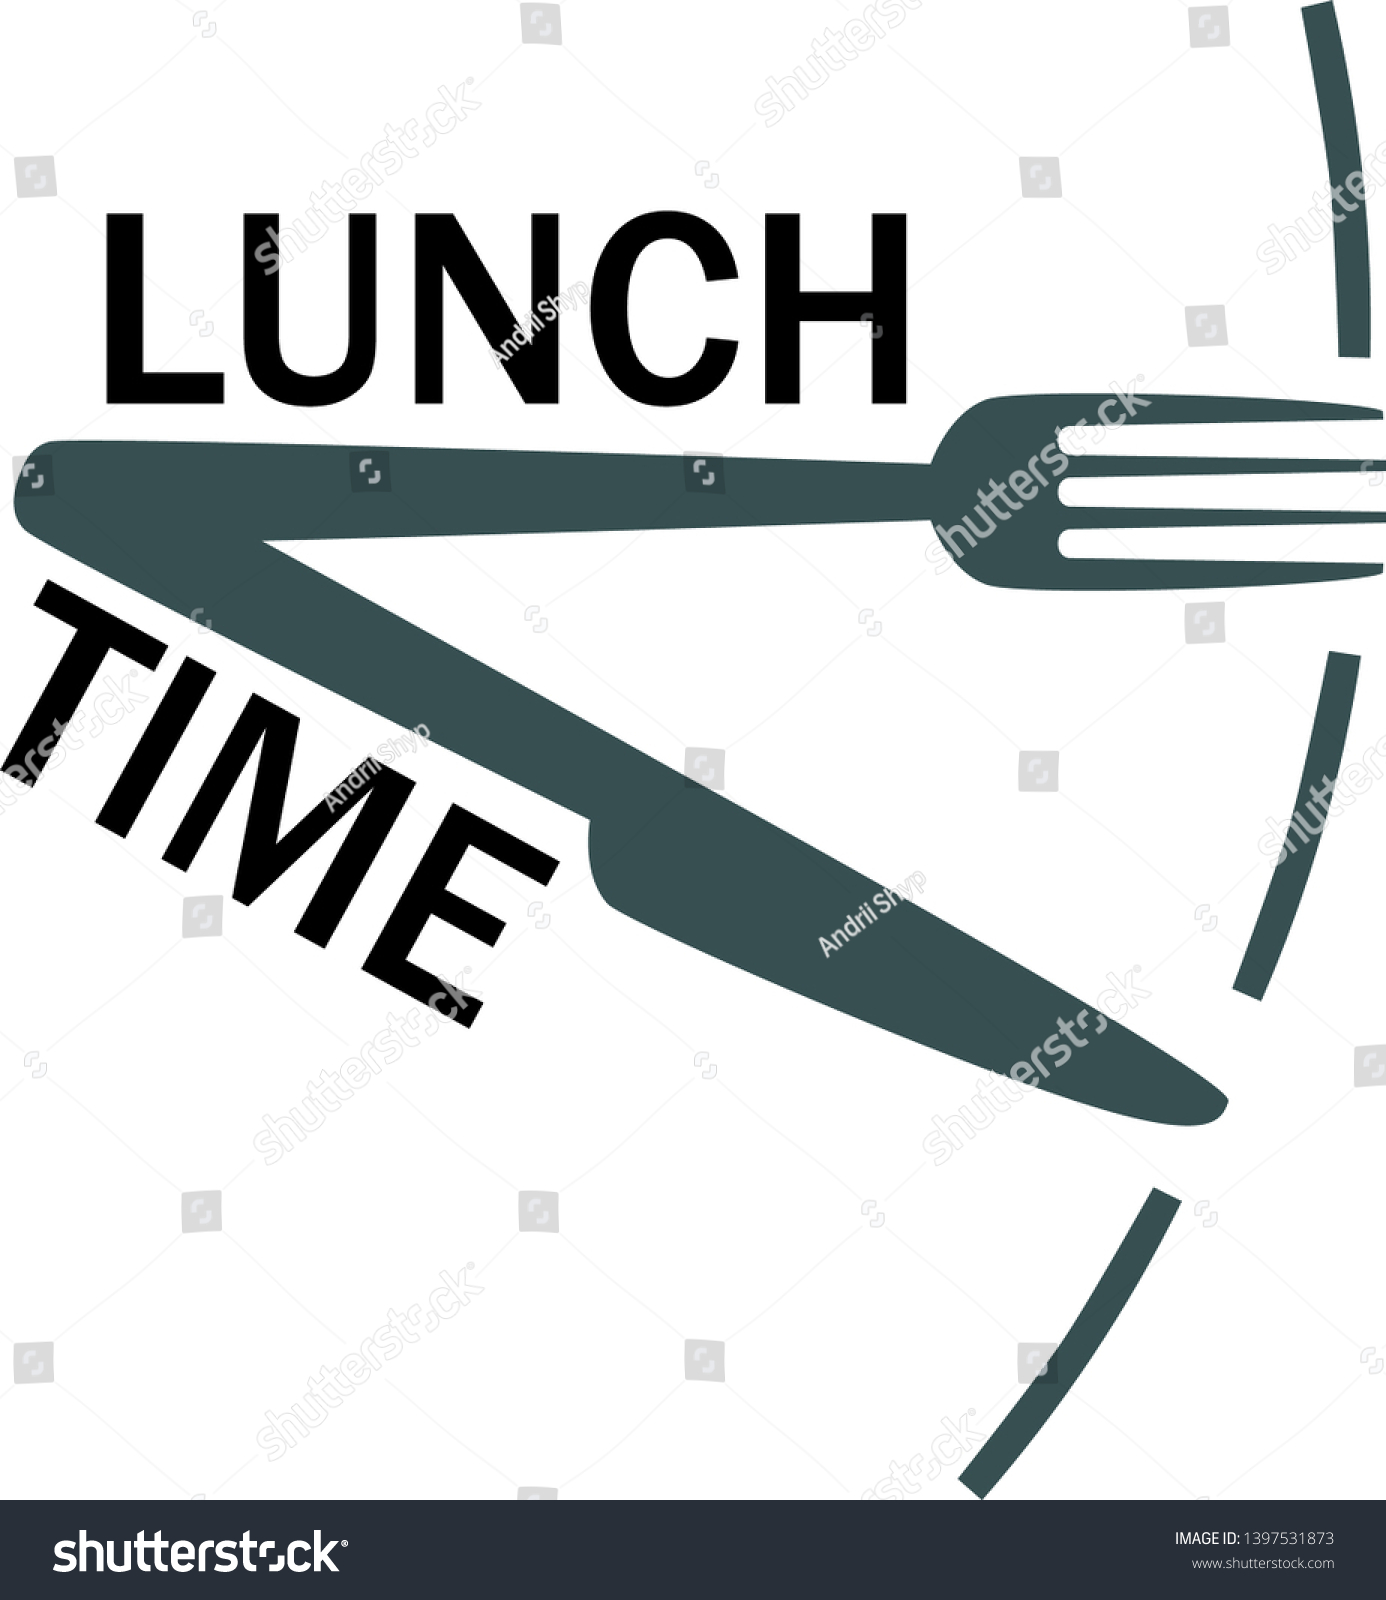 Lunch time, meal text with fork and knife. Isolated icon. Lunch break. Fork knife as clock hands. Flat vector illustration.